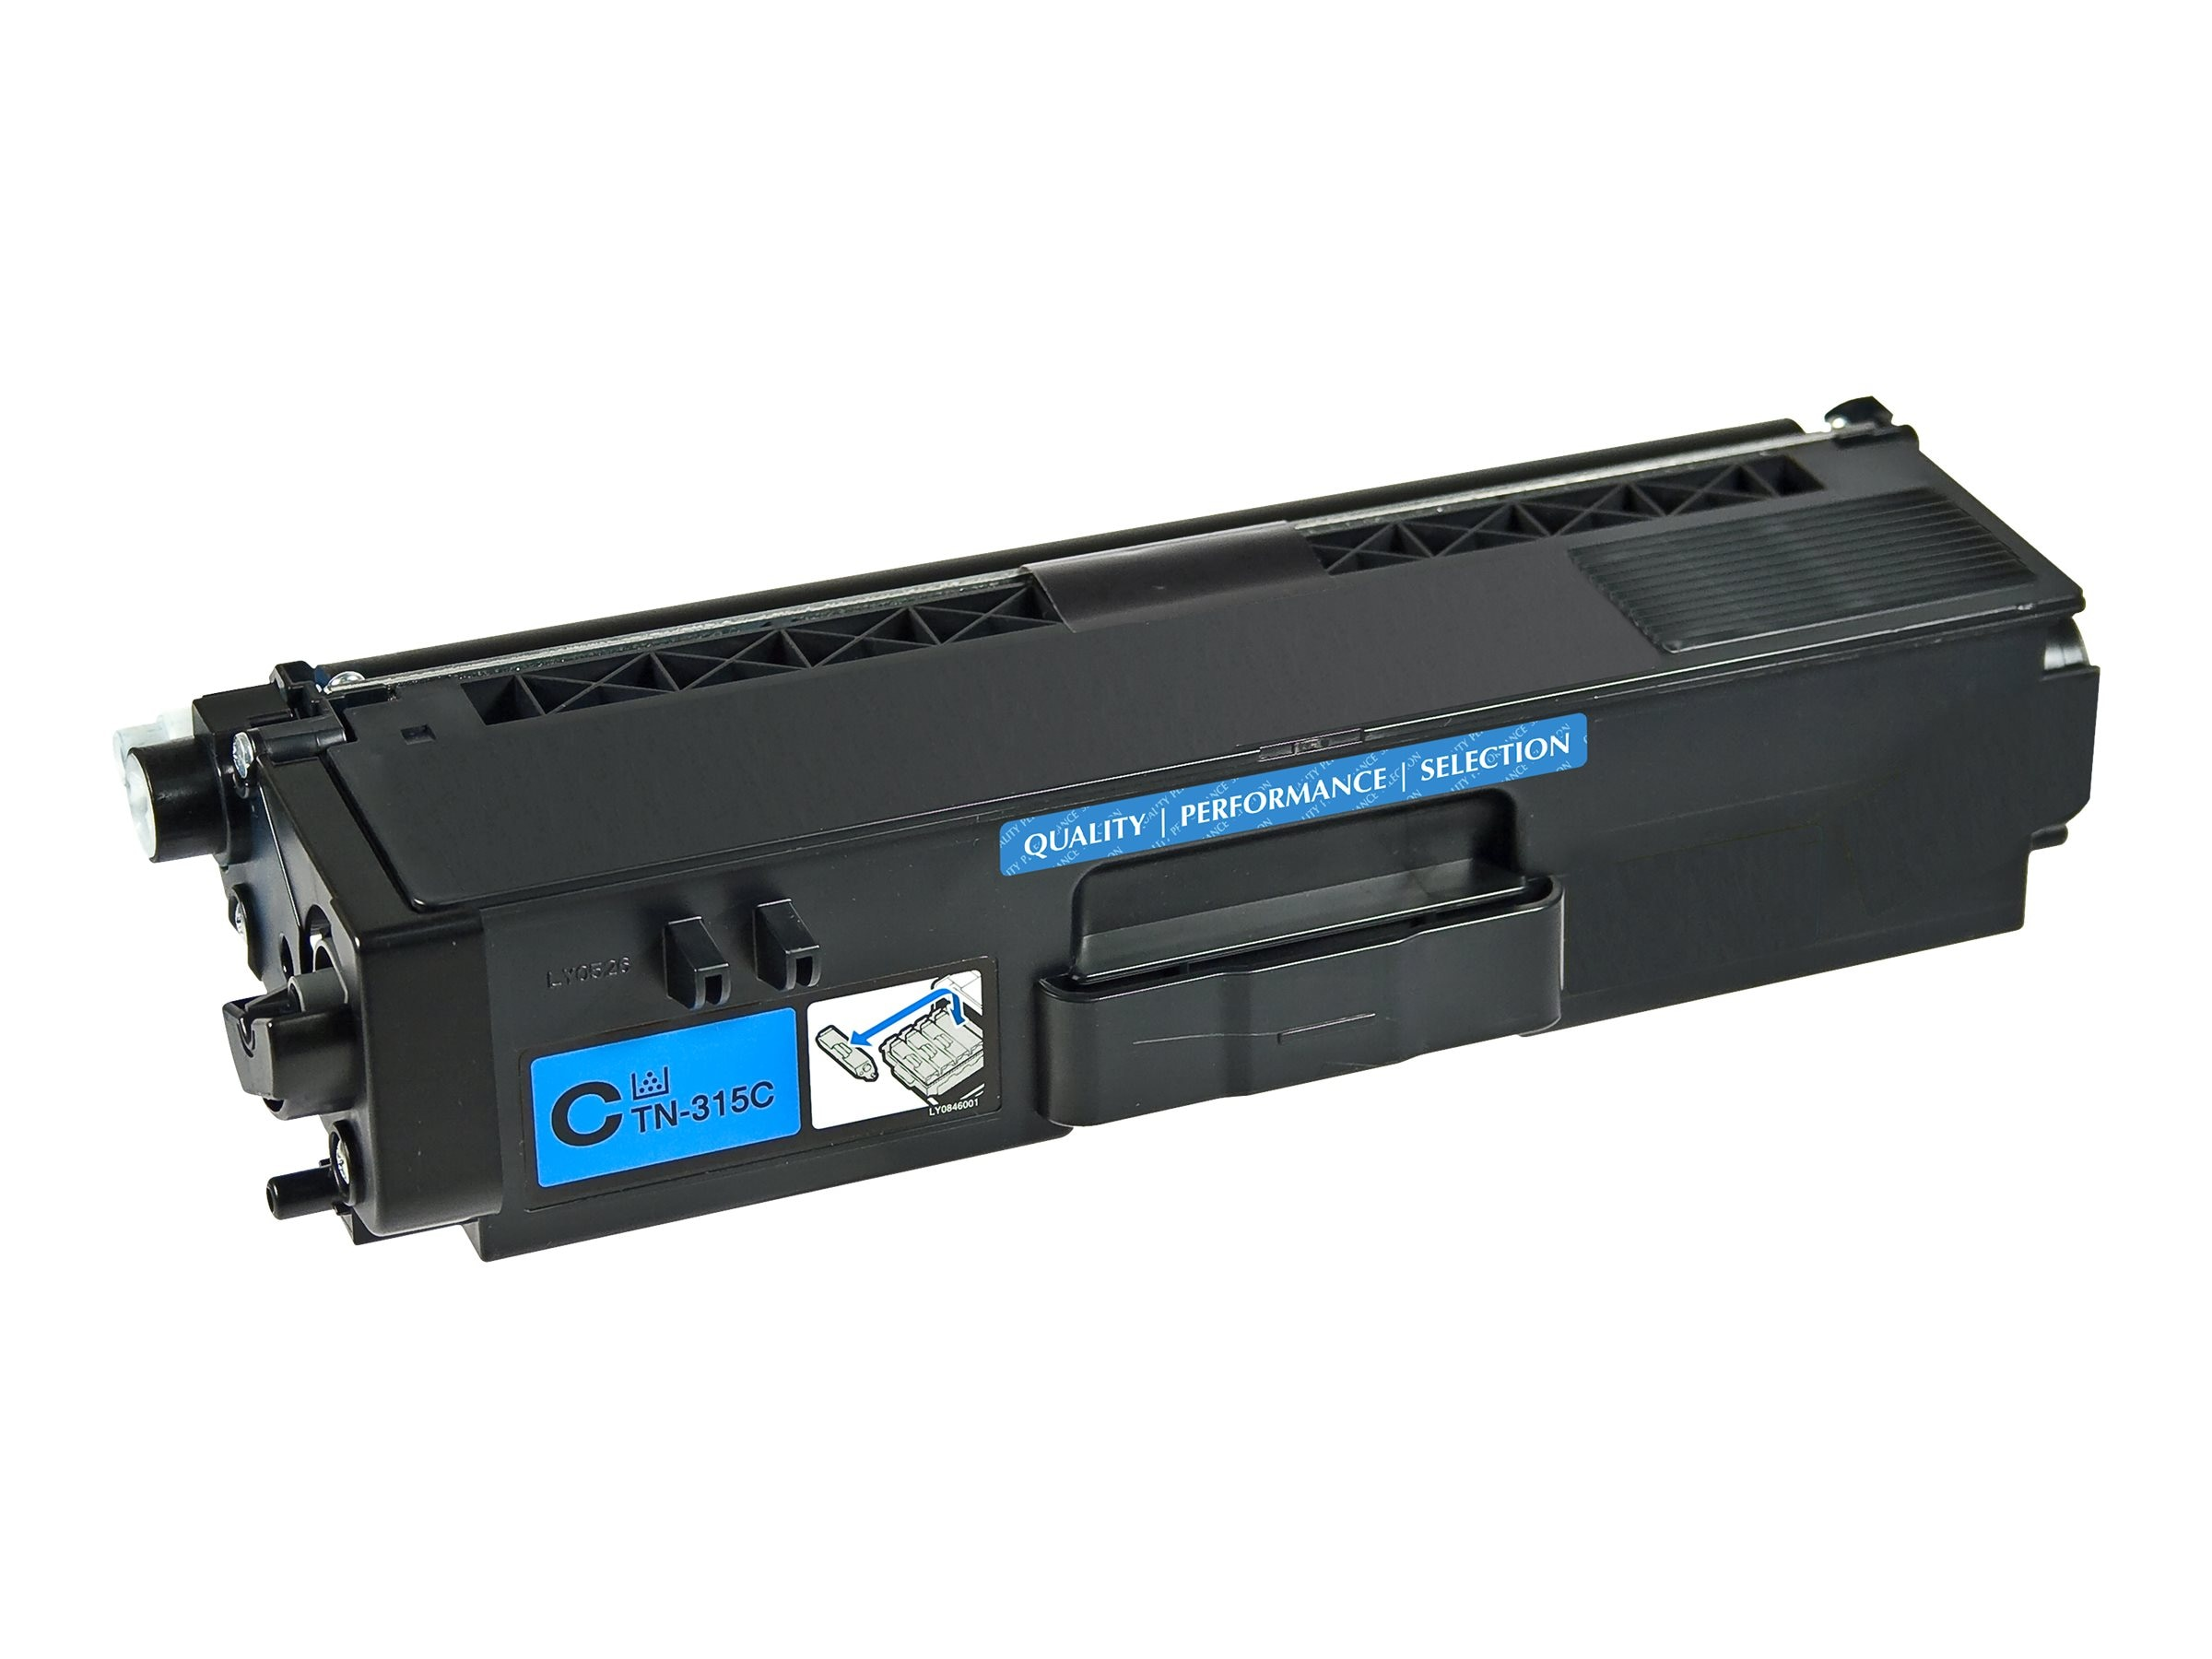 V7 TN315C Cyan High Yield Toner Cartridge for Brother